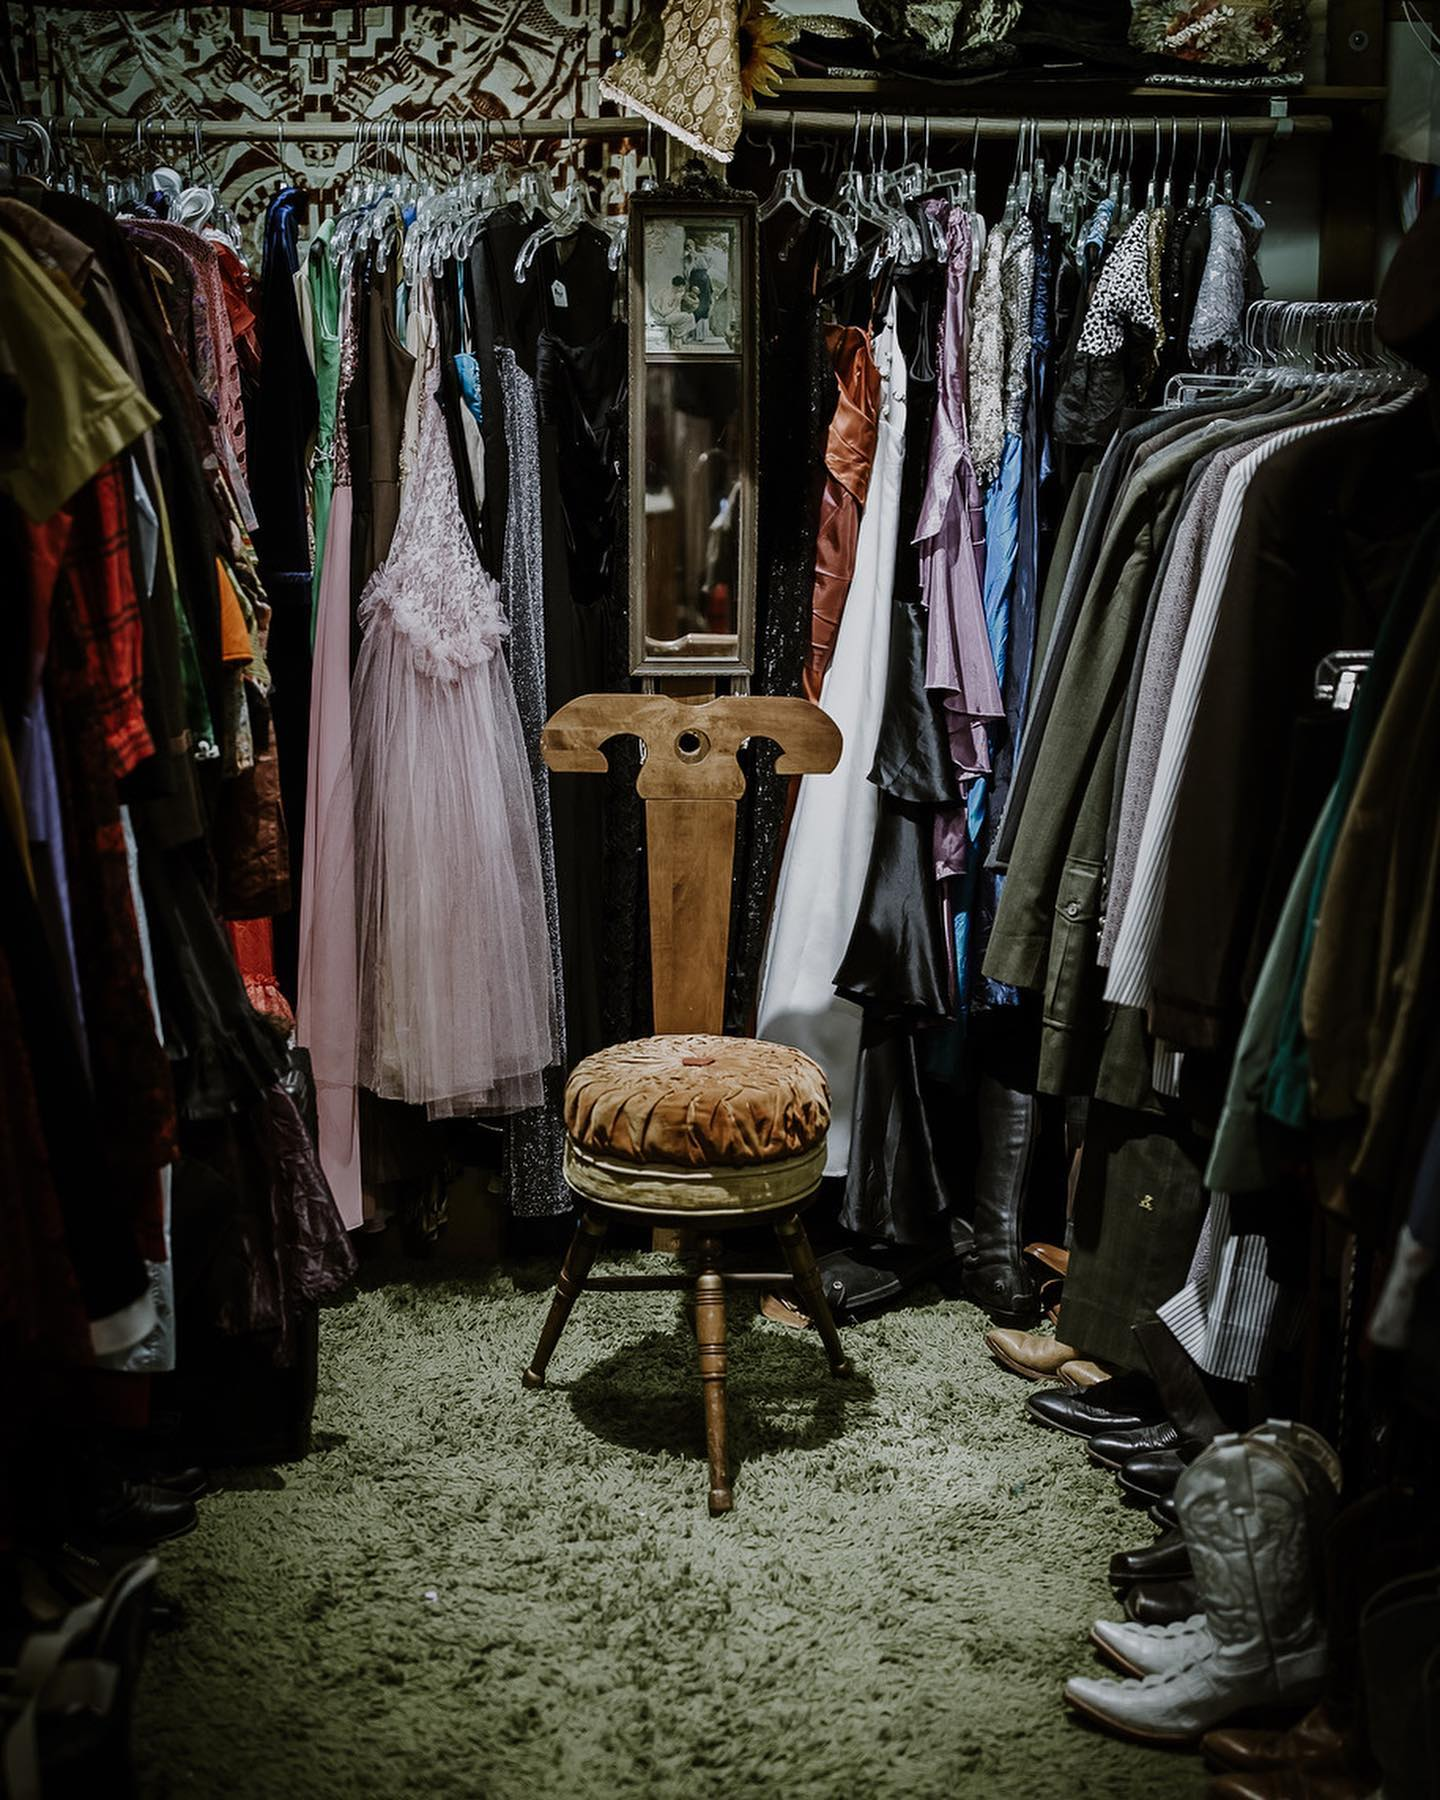 A unique chair is surrounded by hanging clothes in the Great Eastern Trading Co.